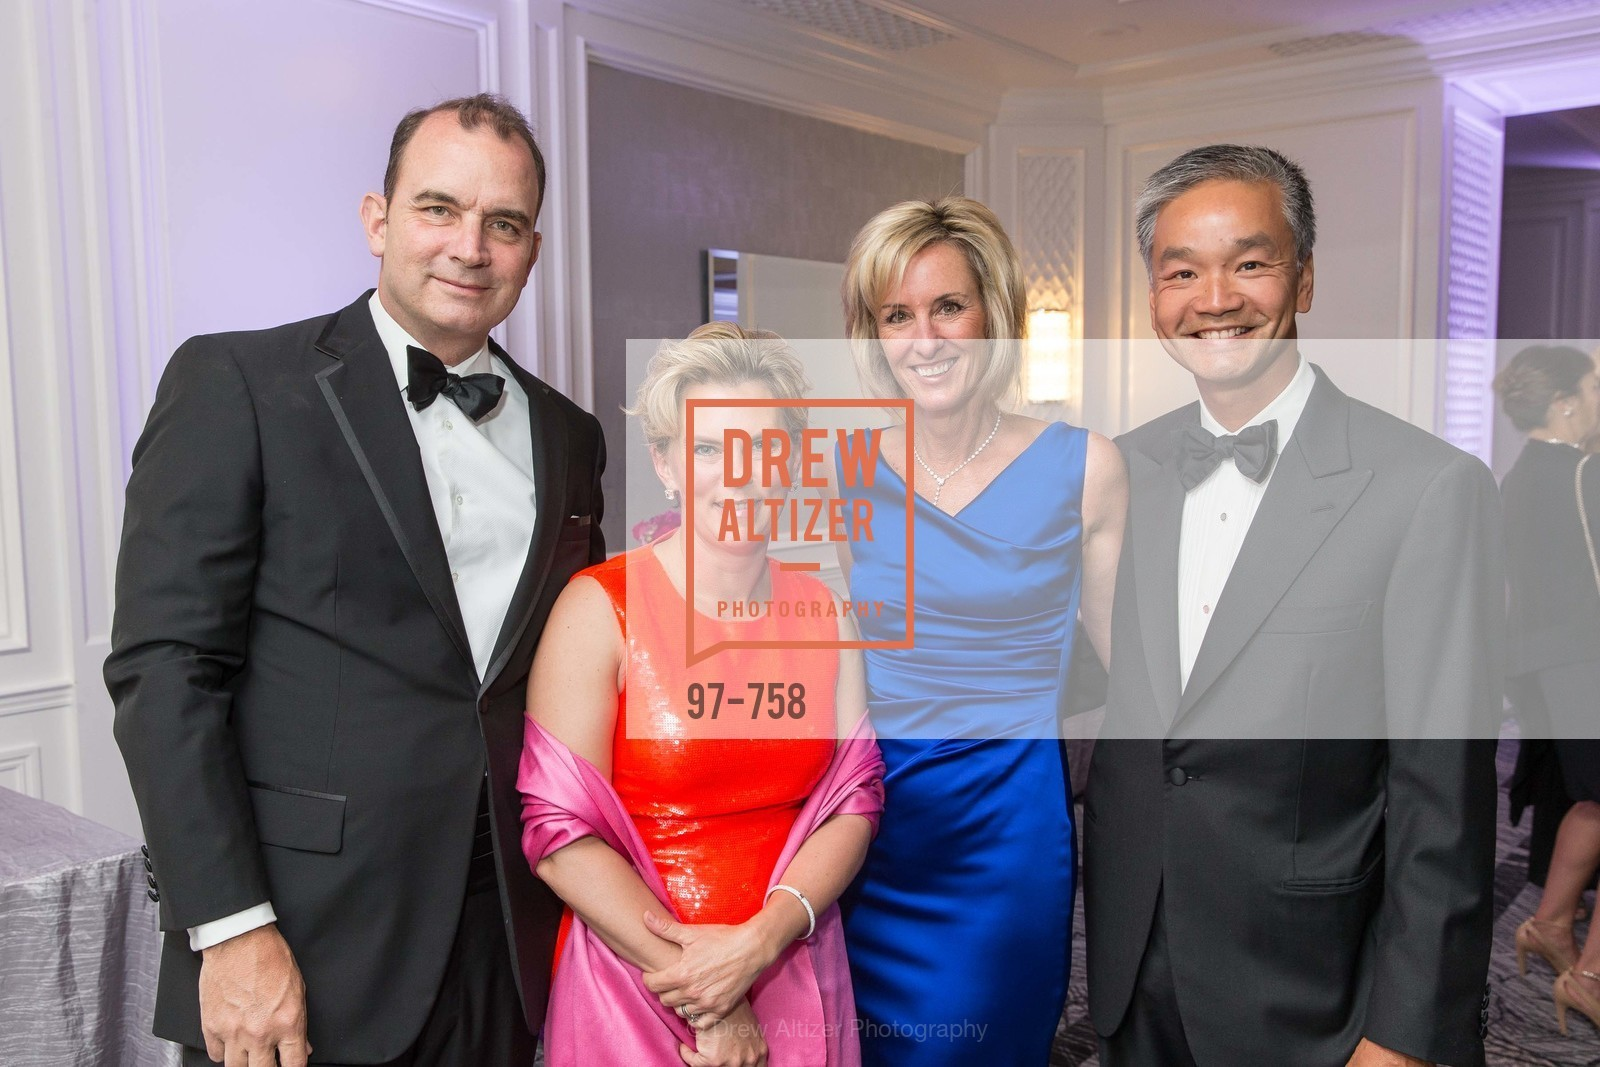 John Shrewberry, Ereca Miller, Gayda Chi, Charles Chi, JUVENILE DIABETES RESEARCH FOUNDATION  Hope Gala, US, May 30th, 2015,Drew Altizer, Drew Altizer Photography, full-service agency, private events, San Francisco photographer, photographer california